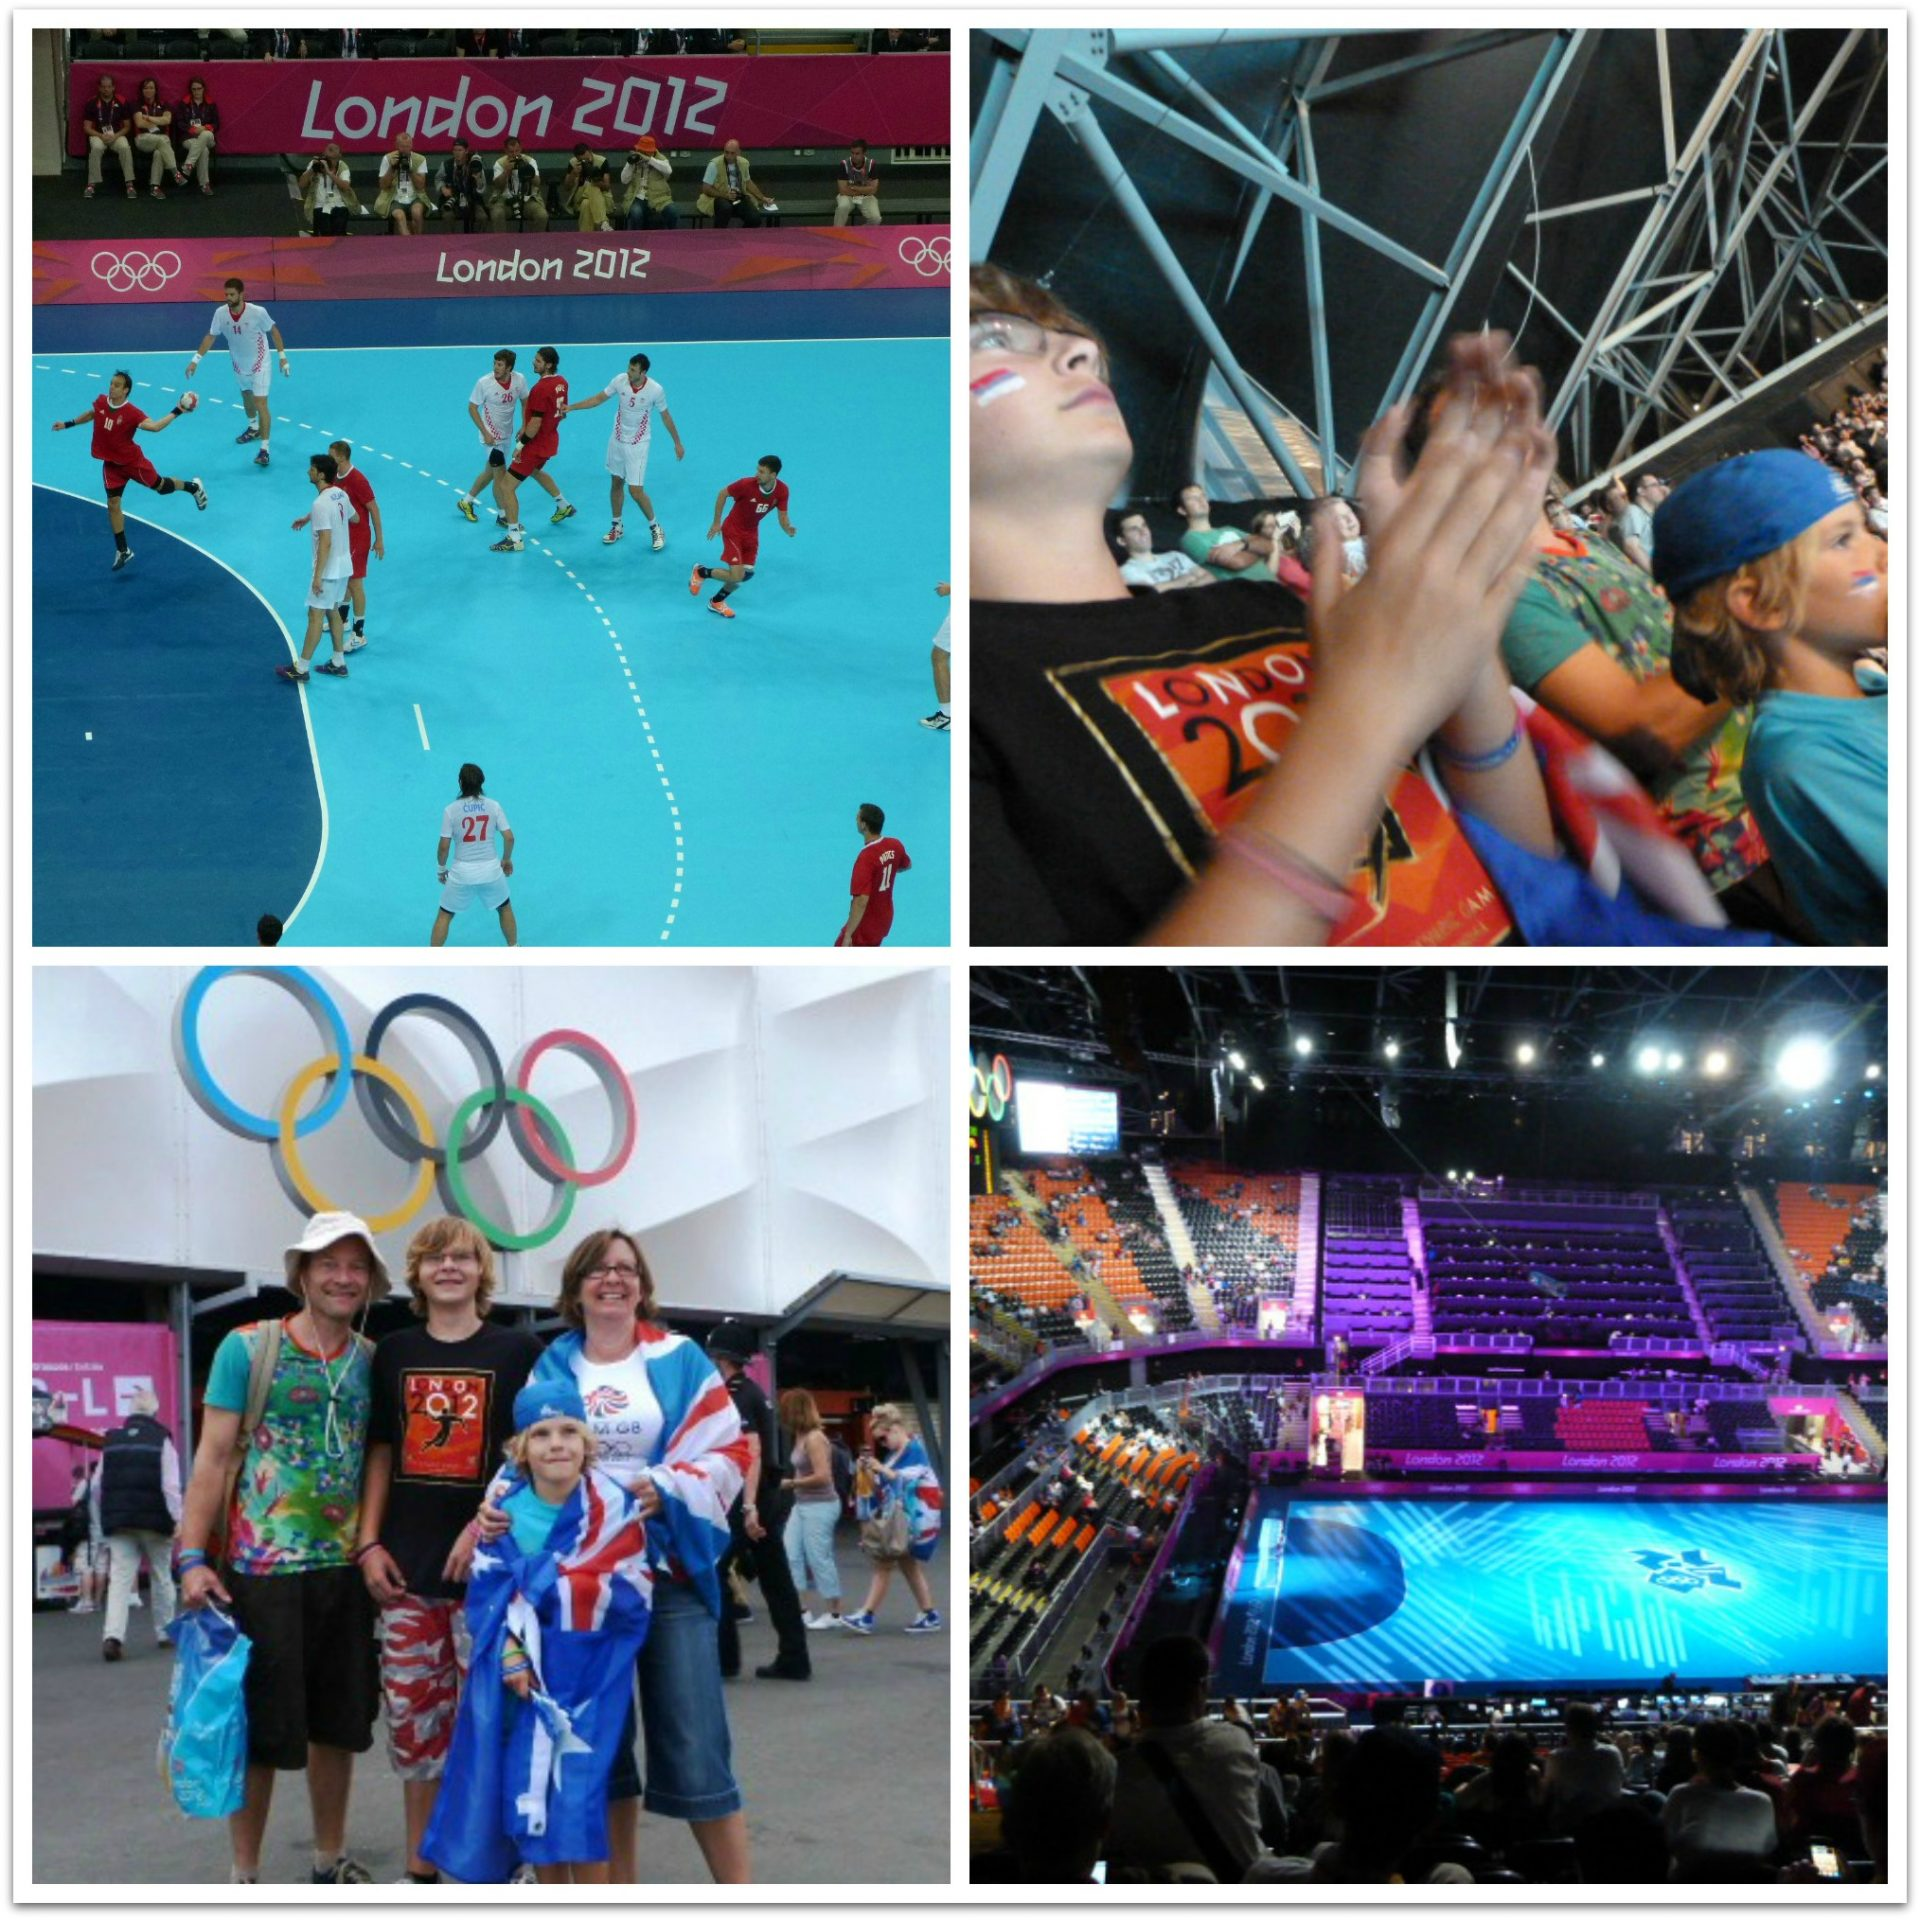 London Olympics Handball bronze medal match